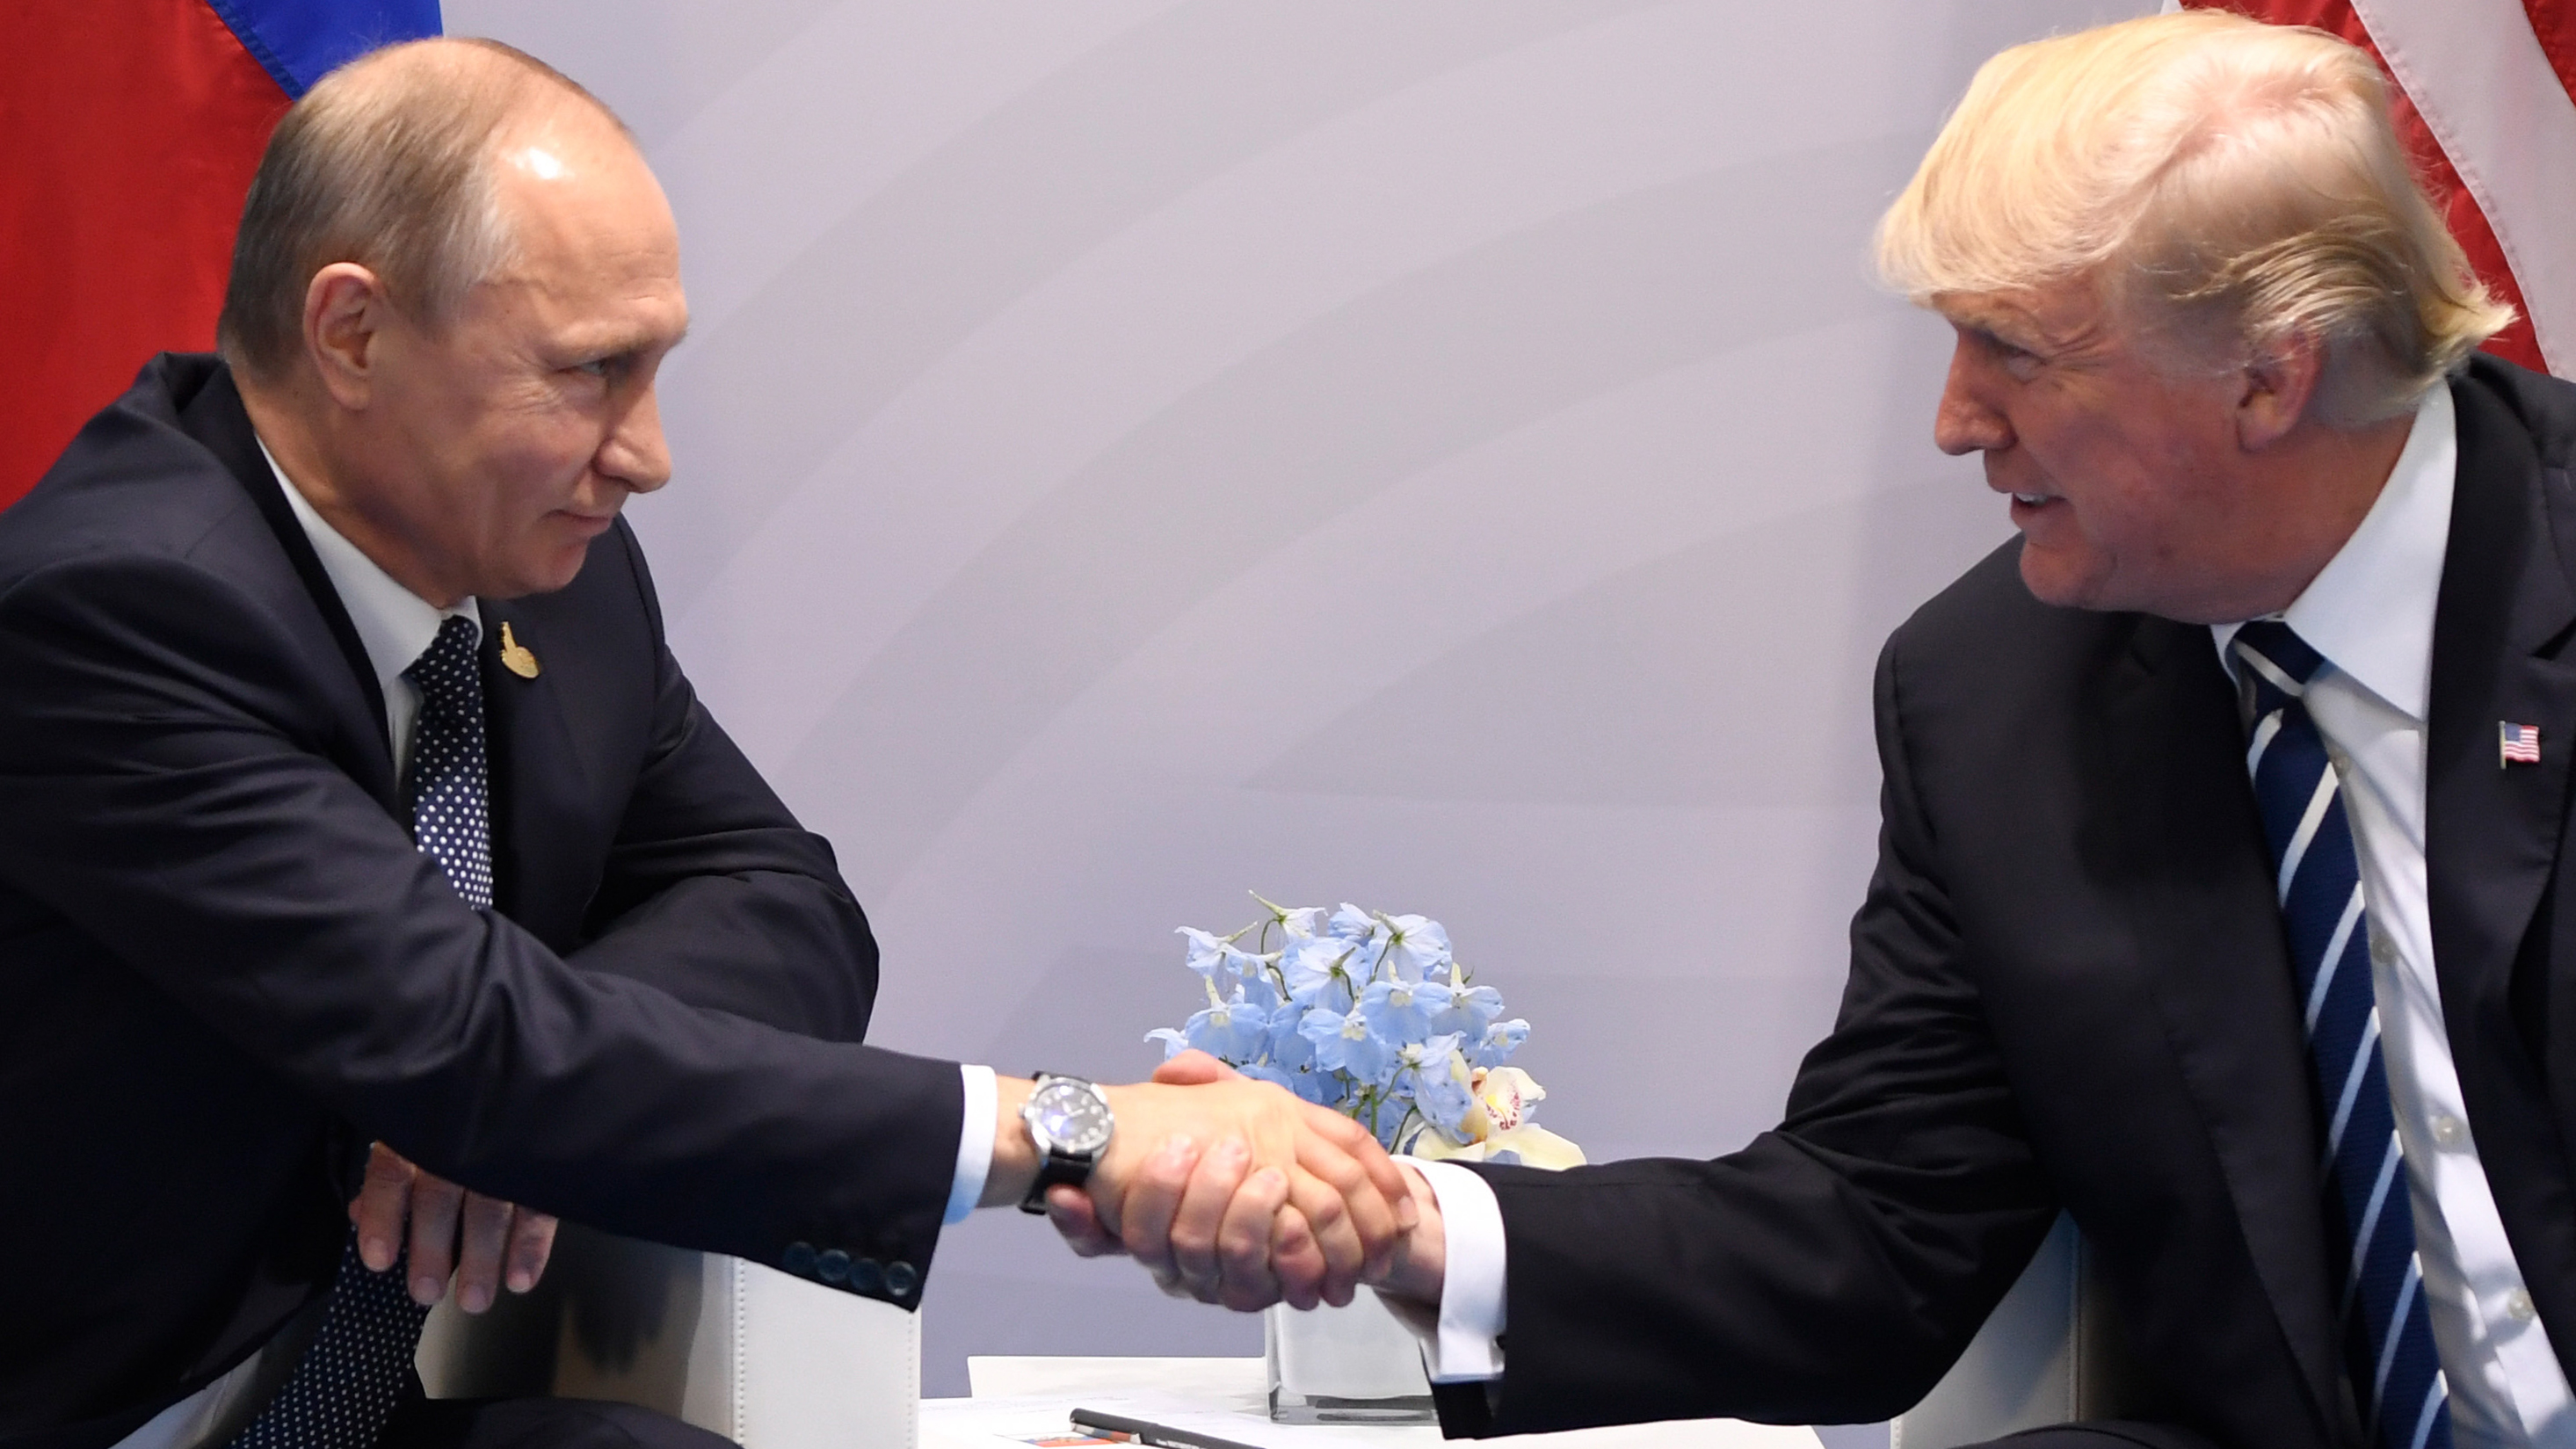 U.S. President Donald Trump and Russia's President Vladimir Putin shake hands during a meeting on the sidelines of the G20 Summit in Hamburg, Germany, on July 7, 2017.